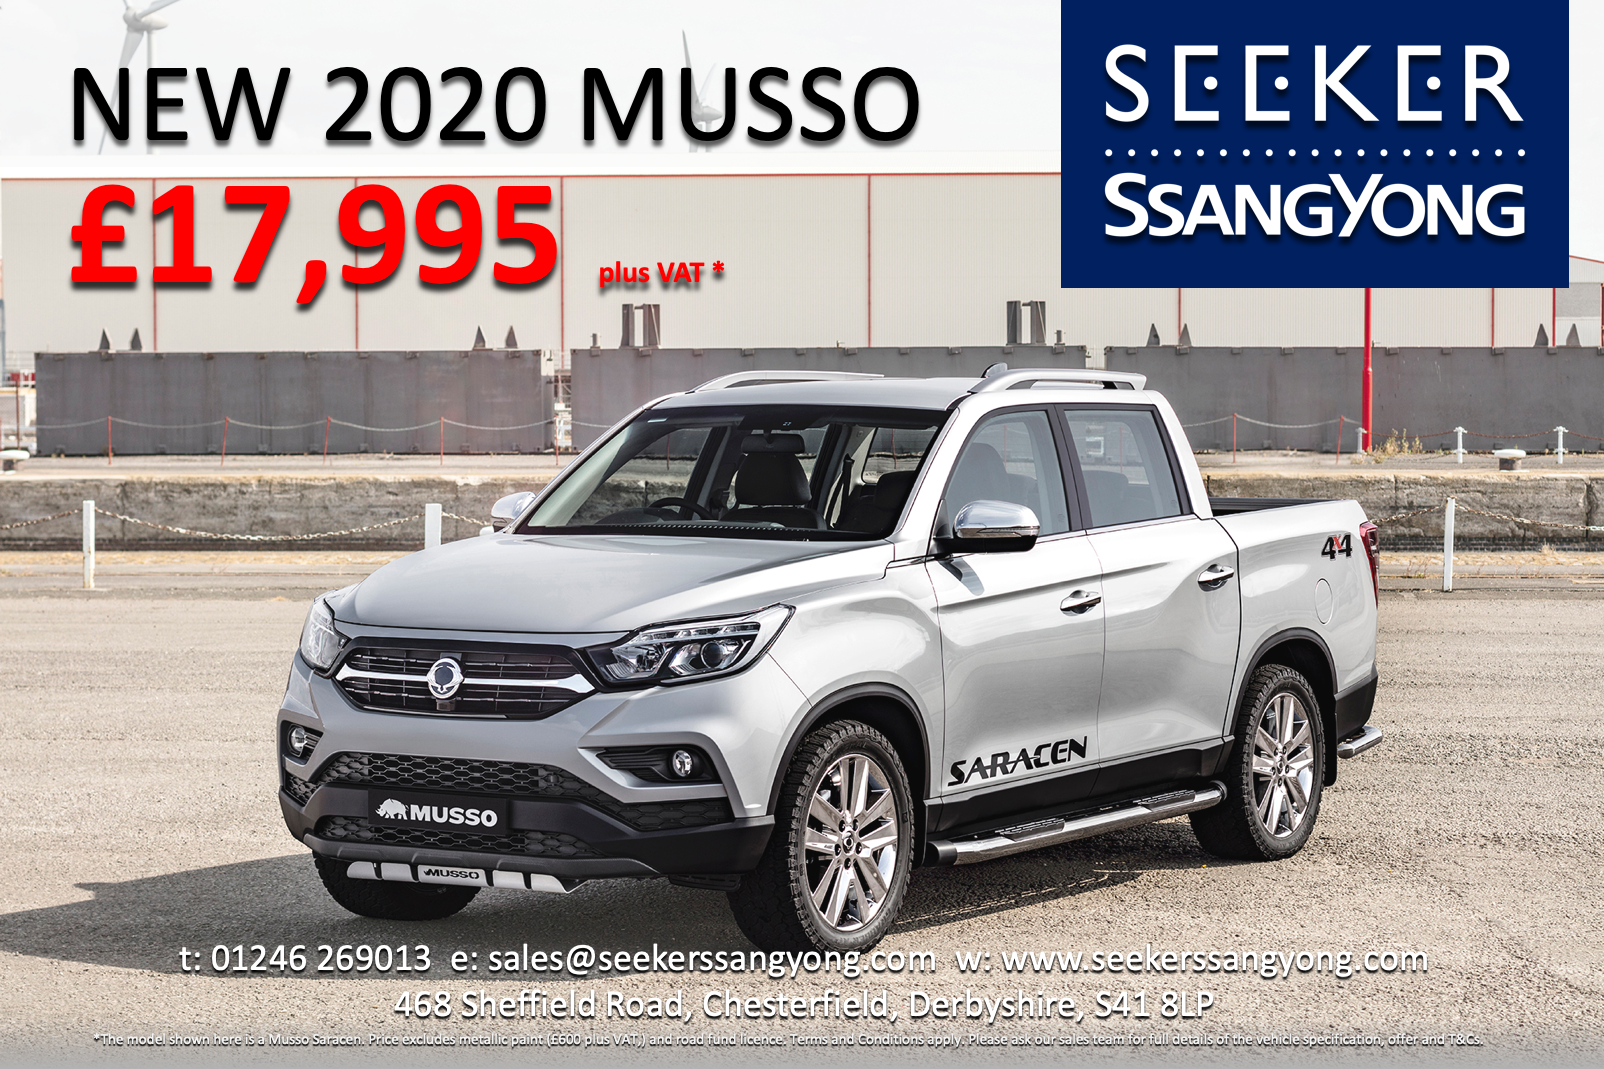 Brand New 2020 Musso EX Pick-up Truck only £17,995 plus VAT - EXCLUSIVE to Seeker SsangYong!